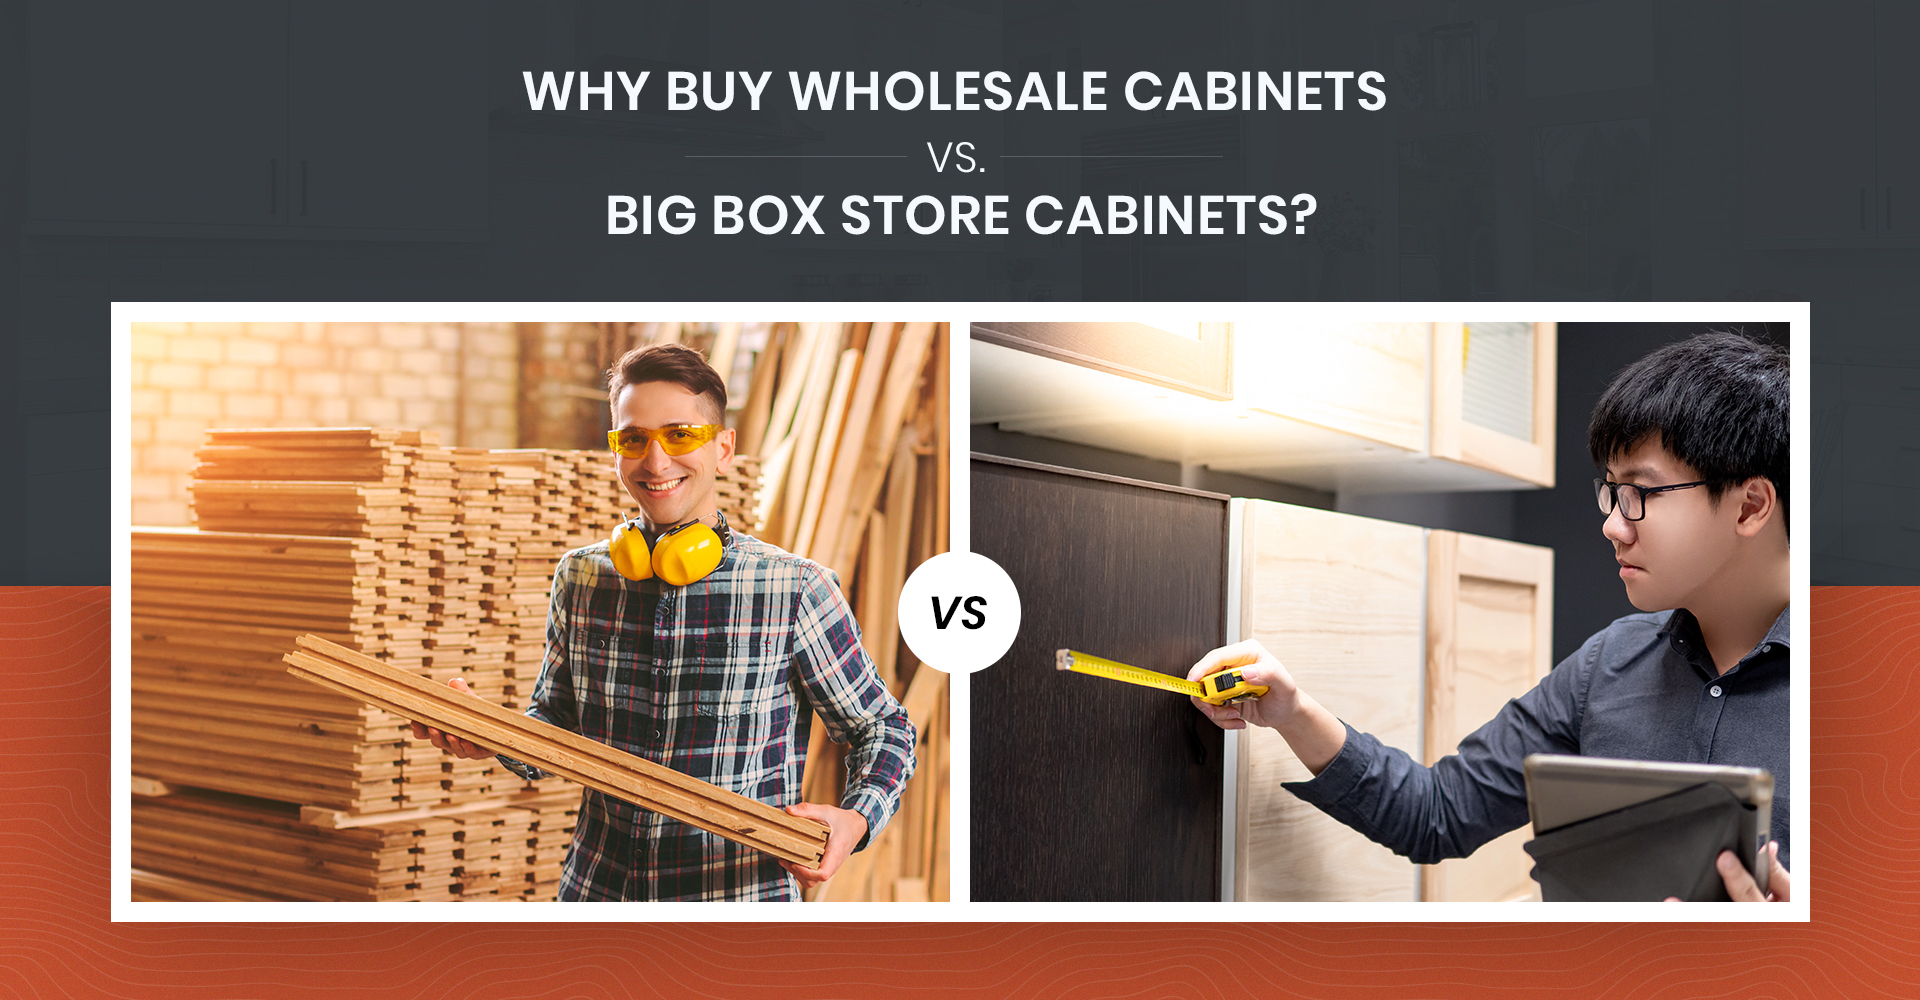 Why Buy Wholesale Cabinets Vs. Big Box Store Cabinets?